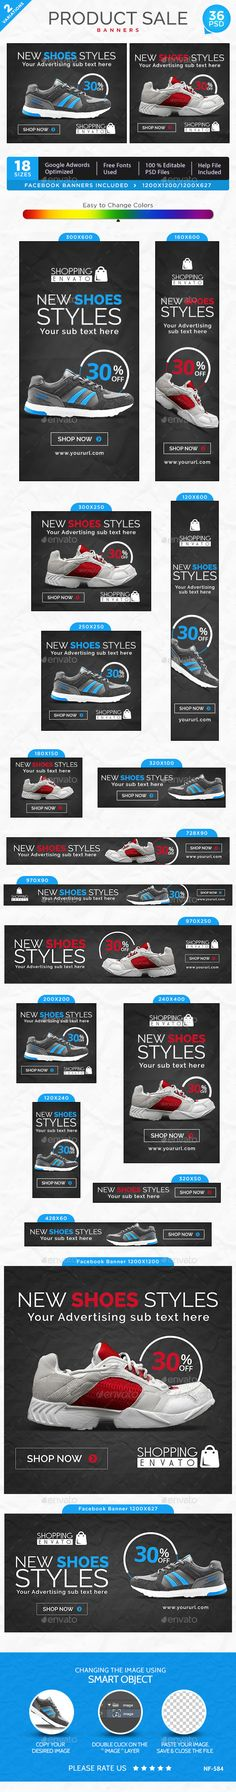 Product Sale Banners Template #design Download: http://graphicriver.net/item/product-sale-banners/12594394?ref=ksioks